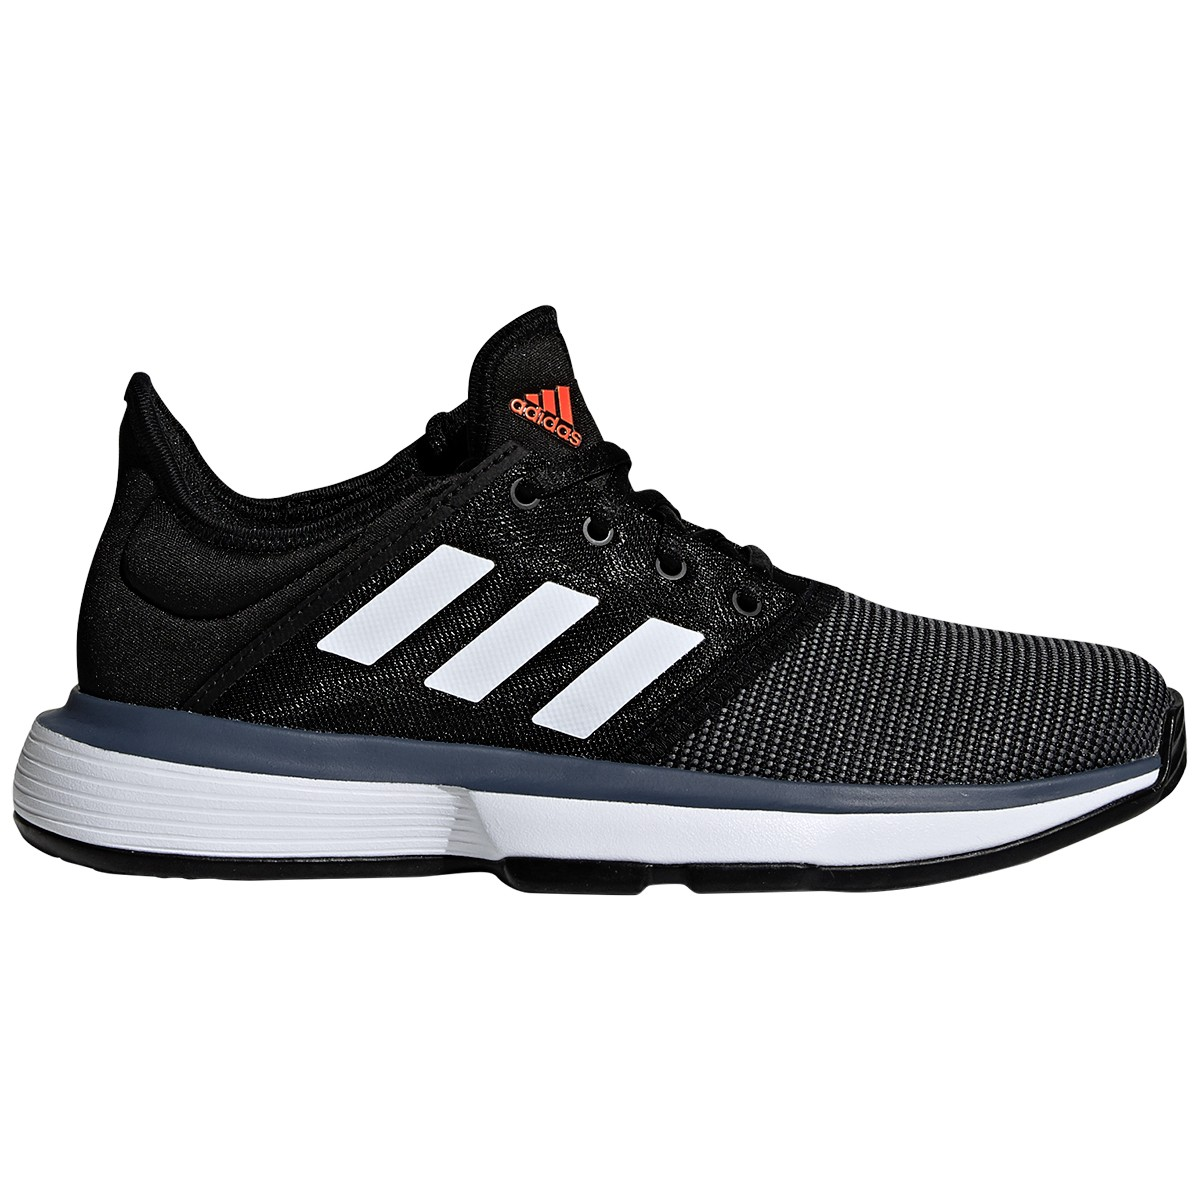 CHAUSSURES ADIDAS JUNIOR SOLECOURT PARLEY TOUTES SURFACES